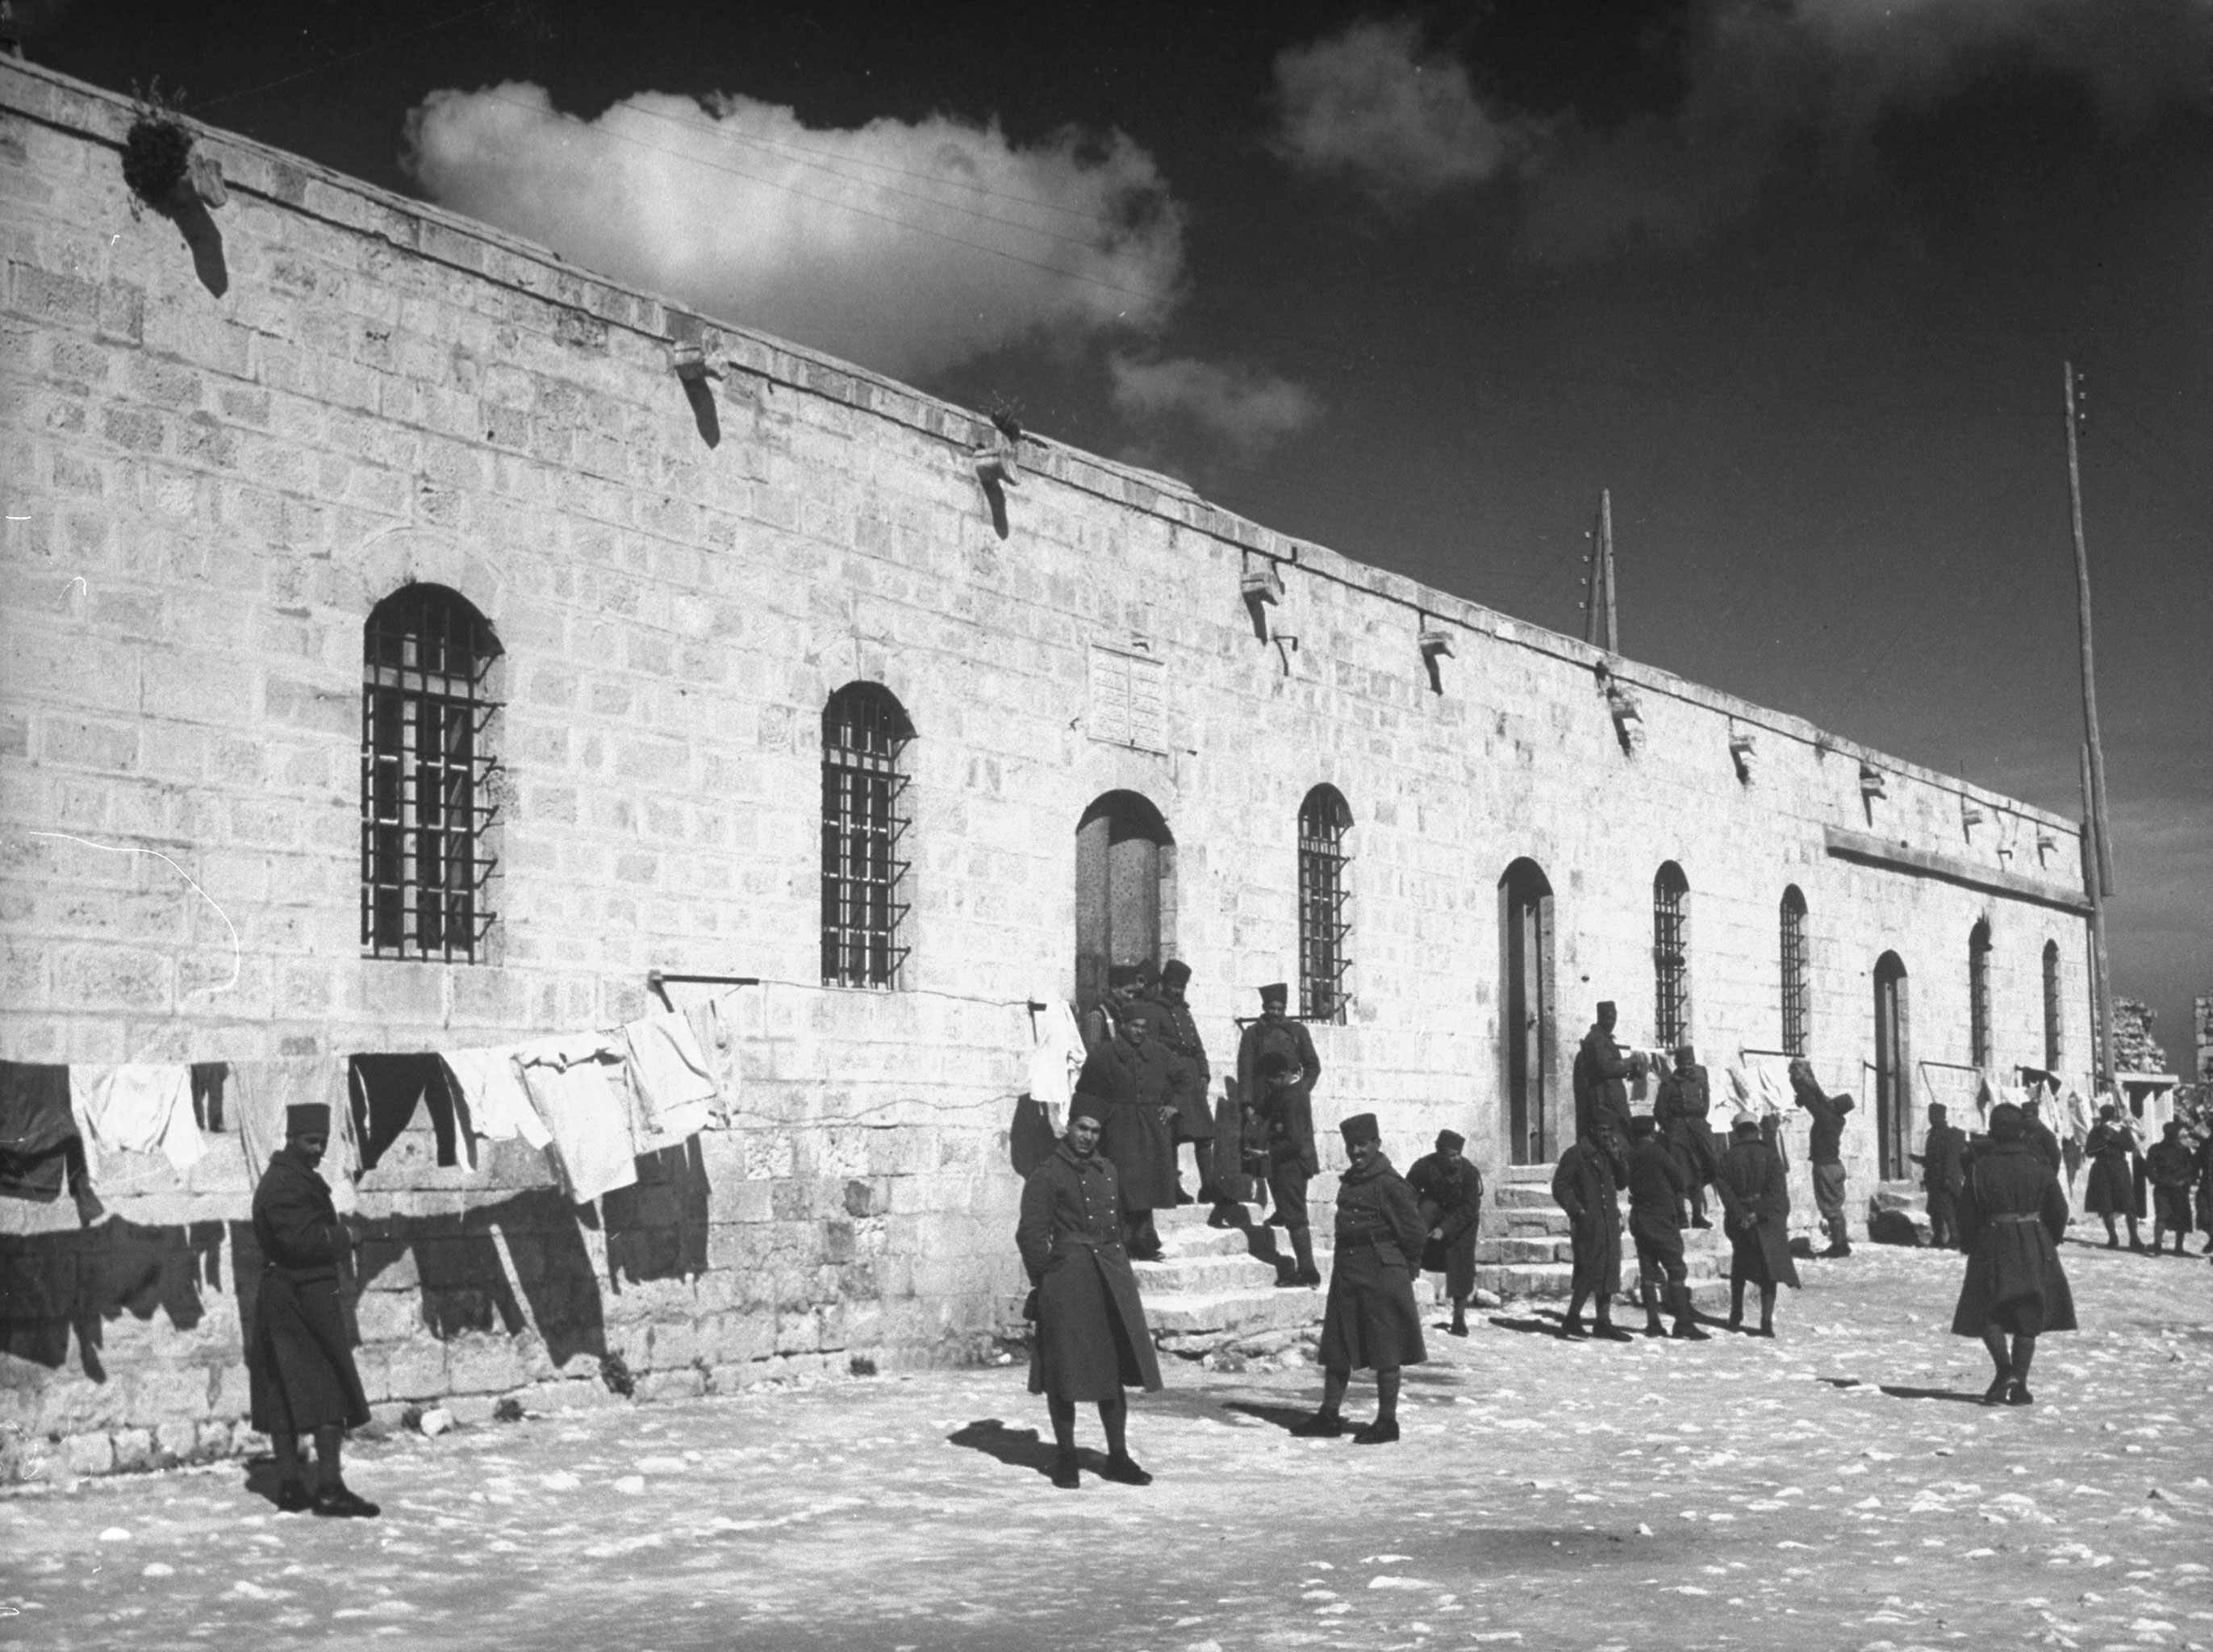 Inside the garrison of the French expeditionary force in the great citadel at Aleppo, Syria, 1940.